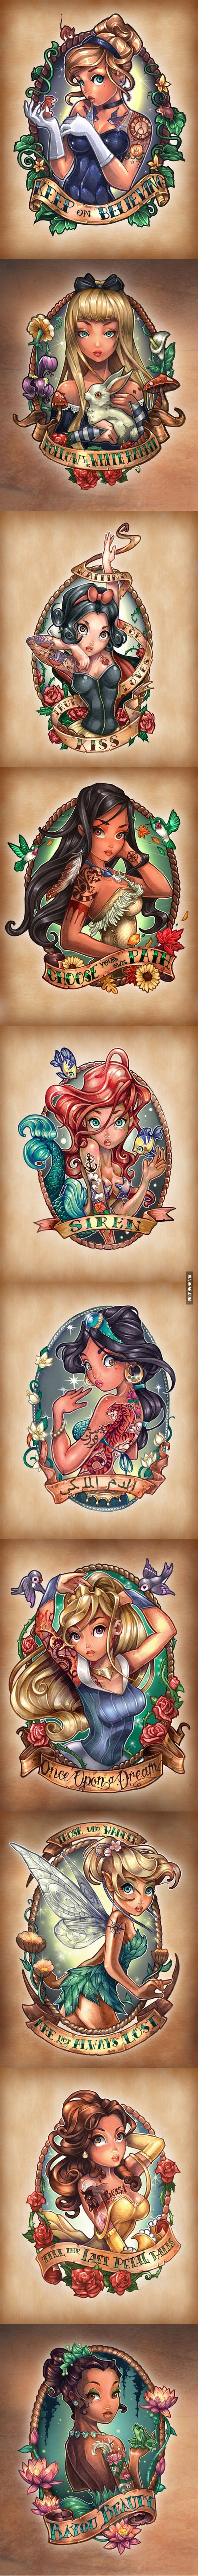 Disney Princesses As Fierce Vintage Tattooed Pin-Ups - 9GAG